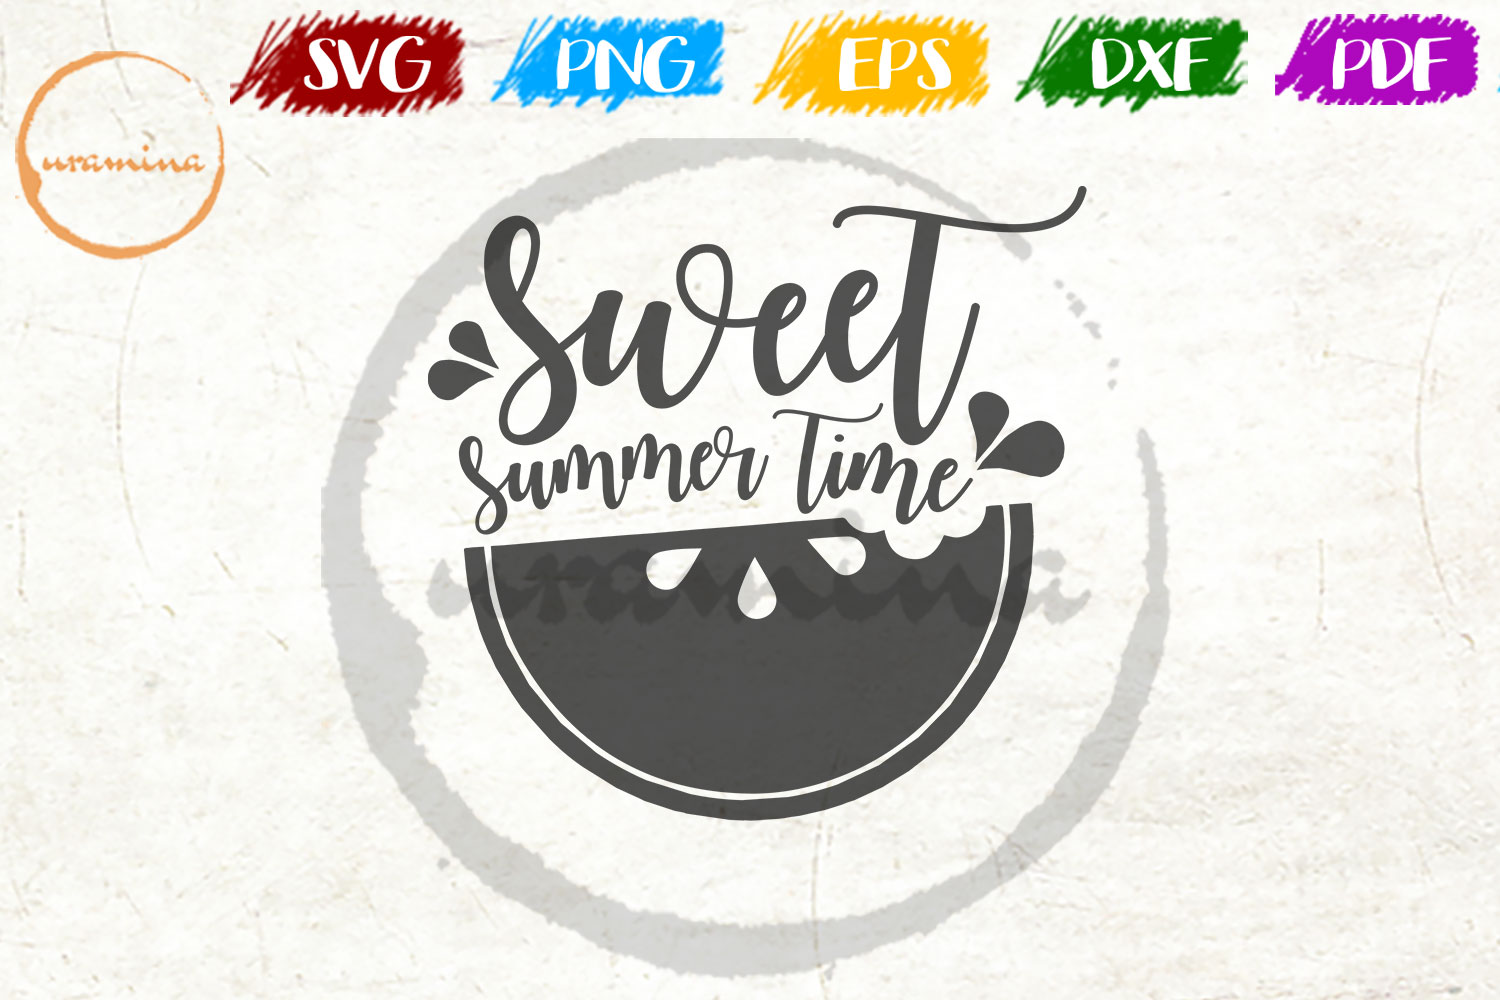 Download Free Sweet Summer Time Graphic By Uramina Creative Fabrica for Cricut Explore, Silhouette and other cutting machines.